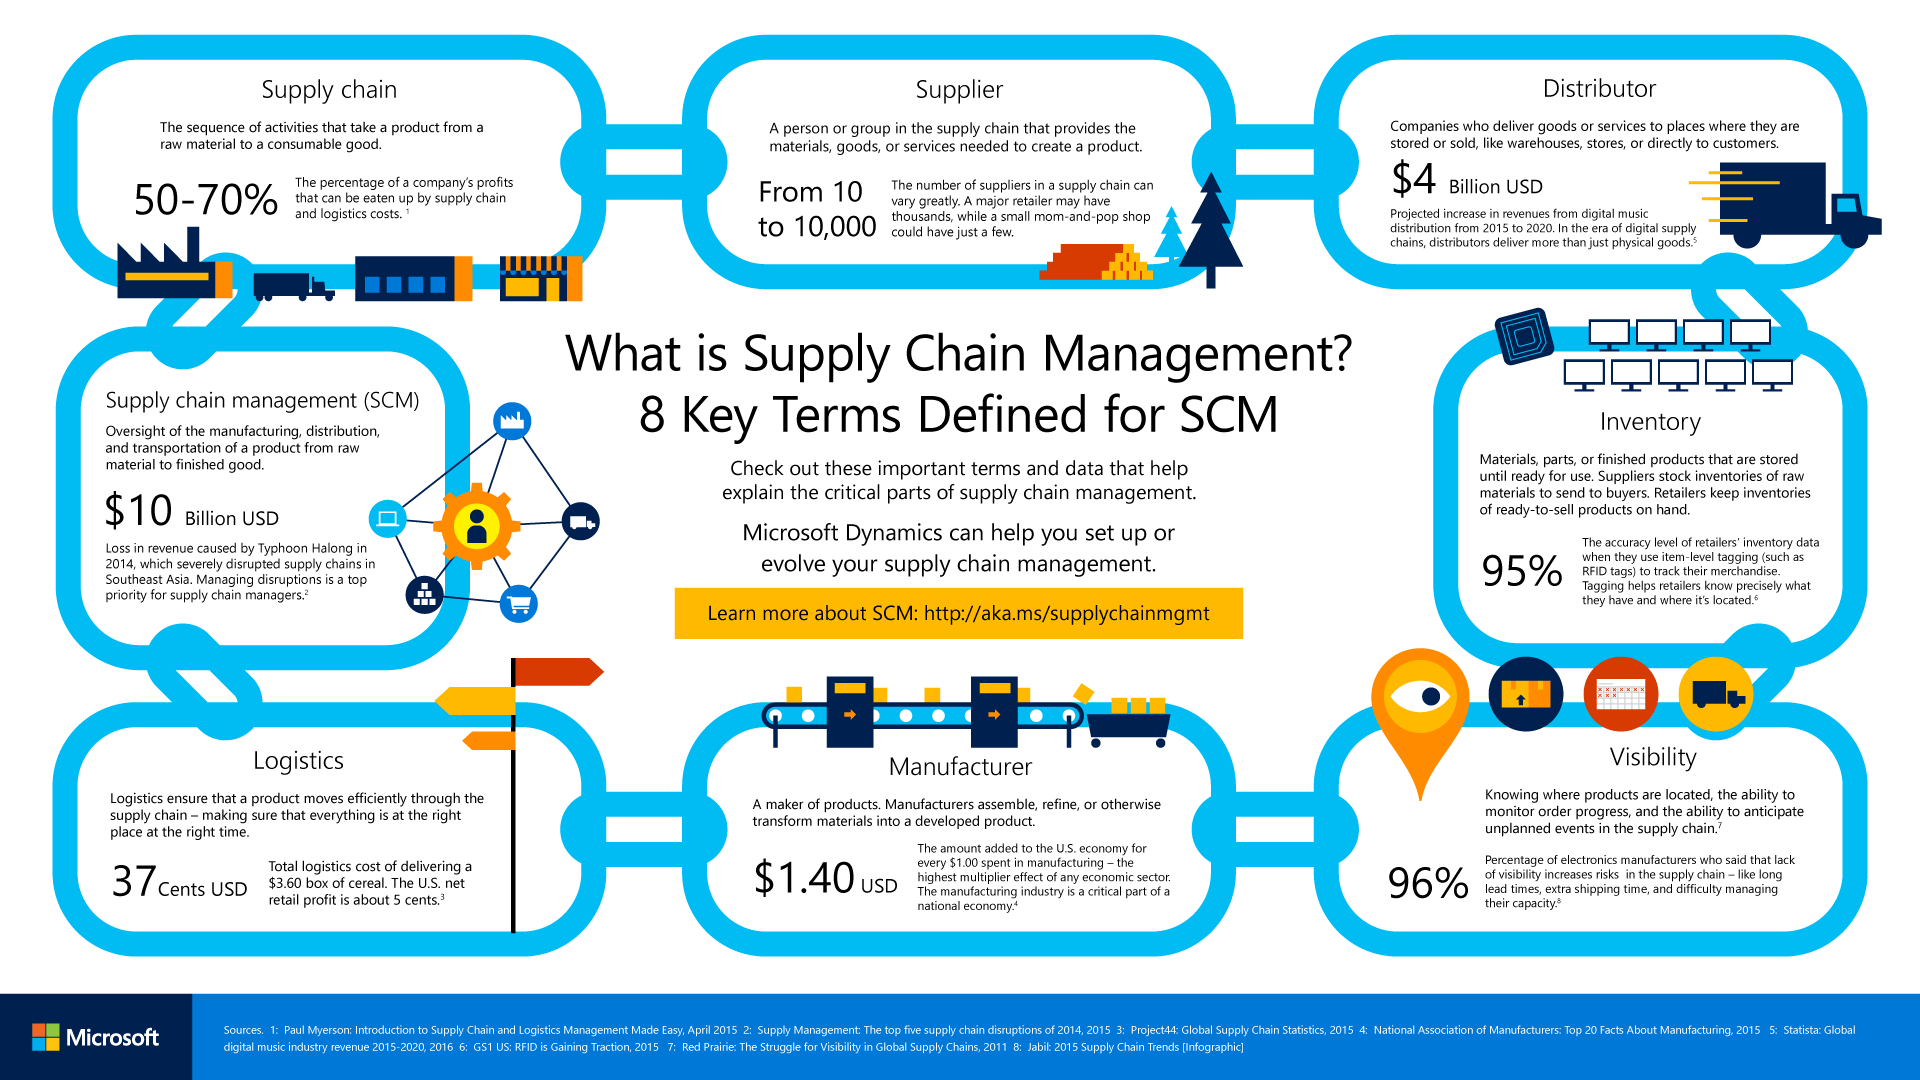 Supply Chain Management and the Internet of Things